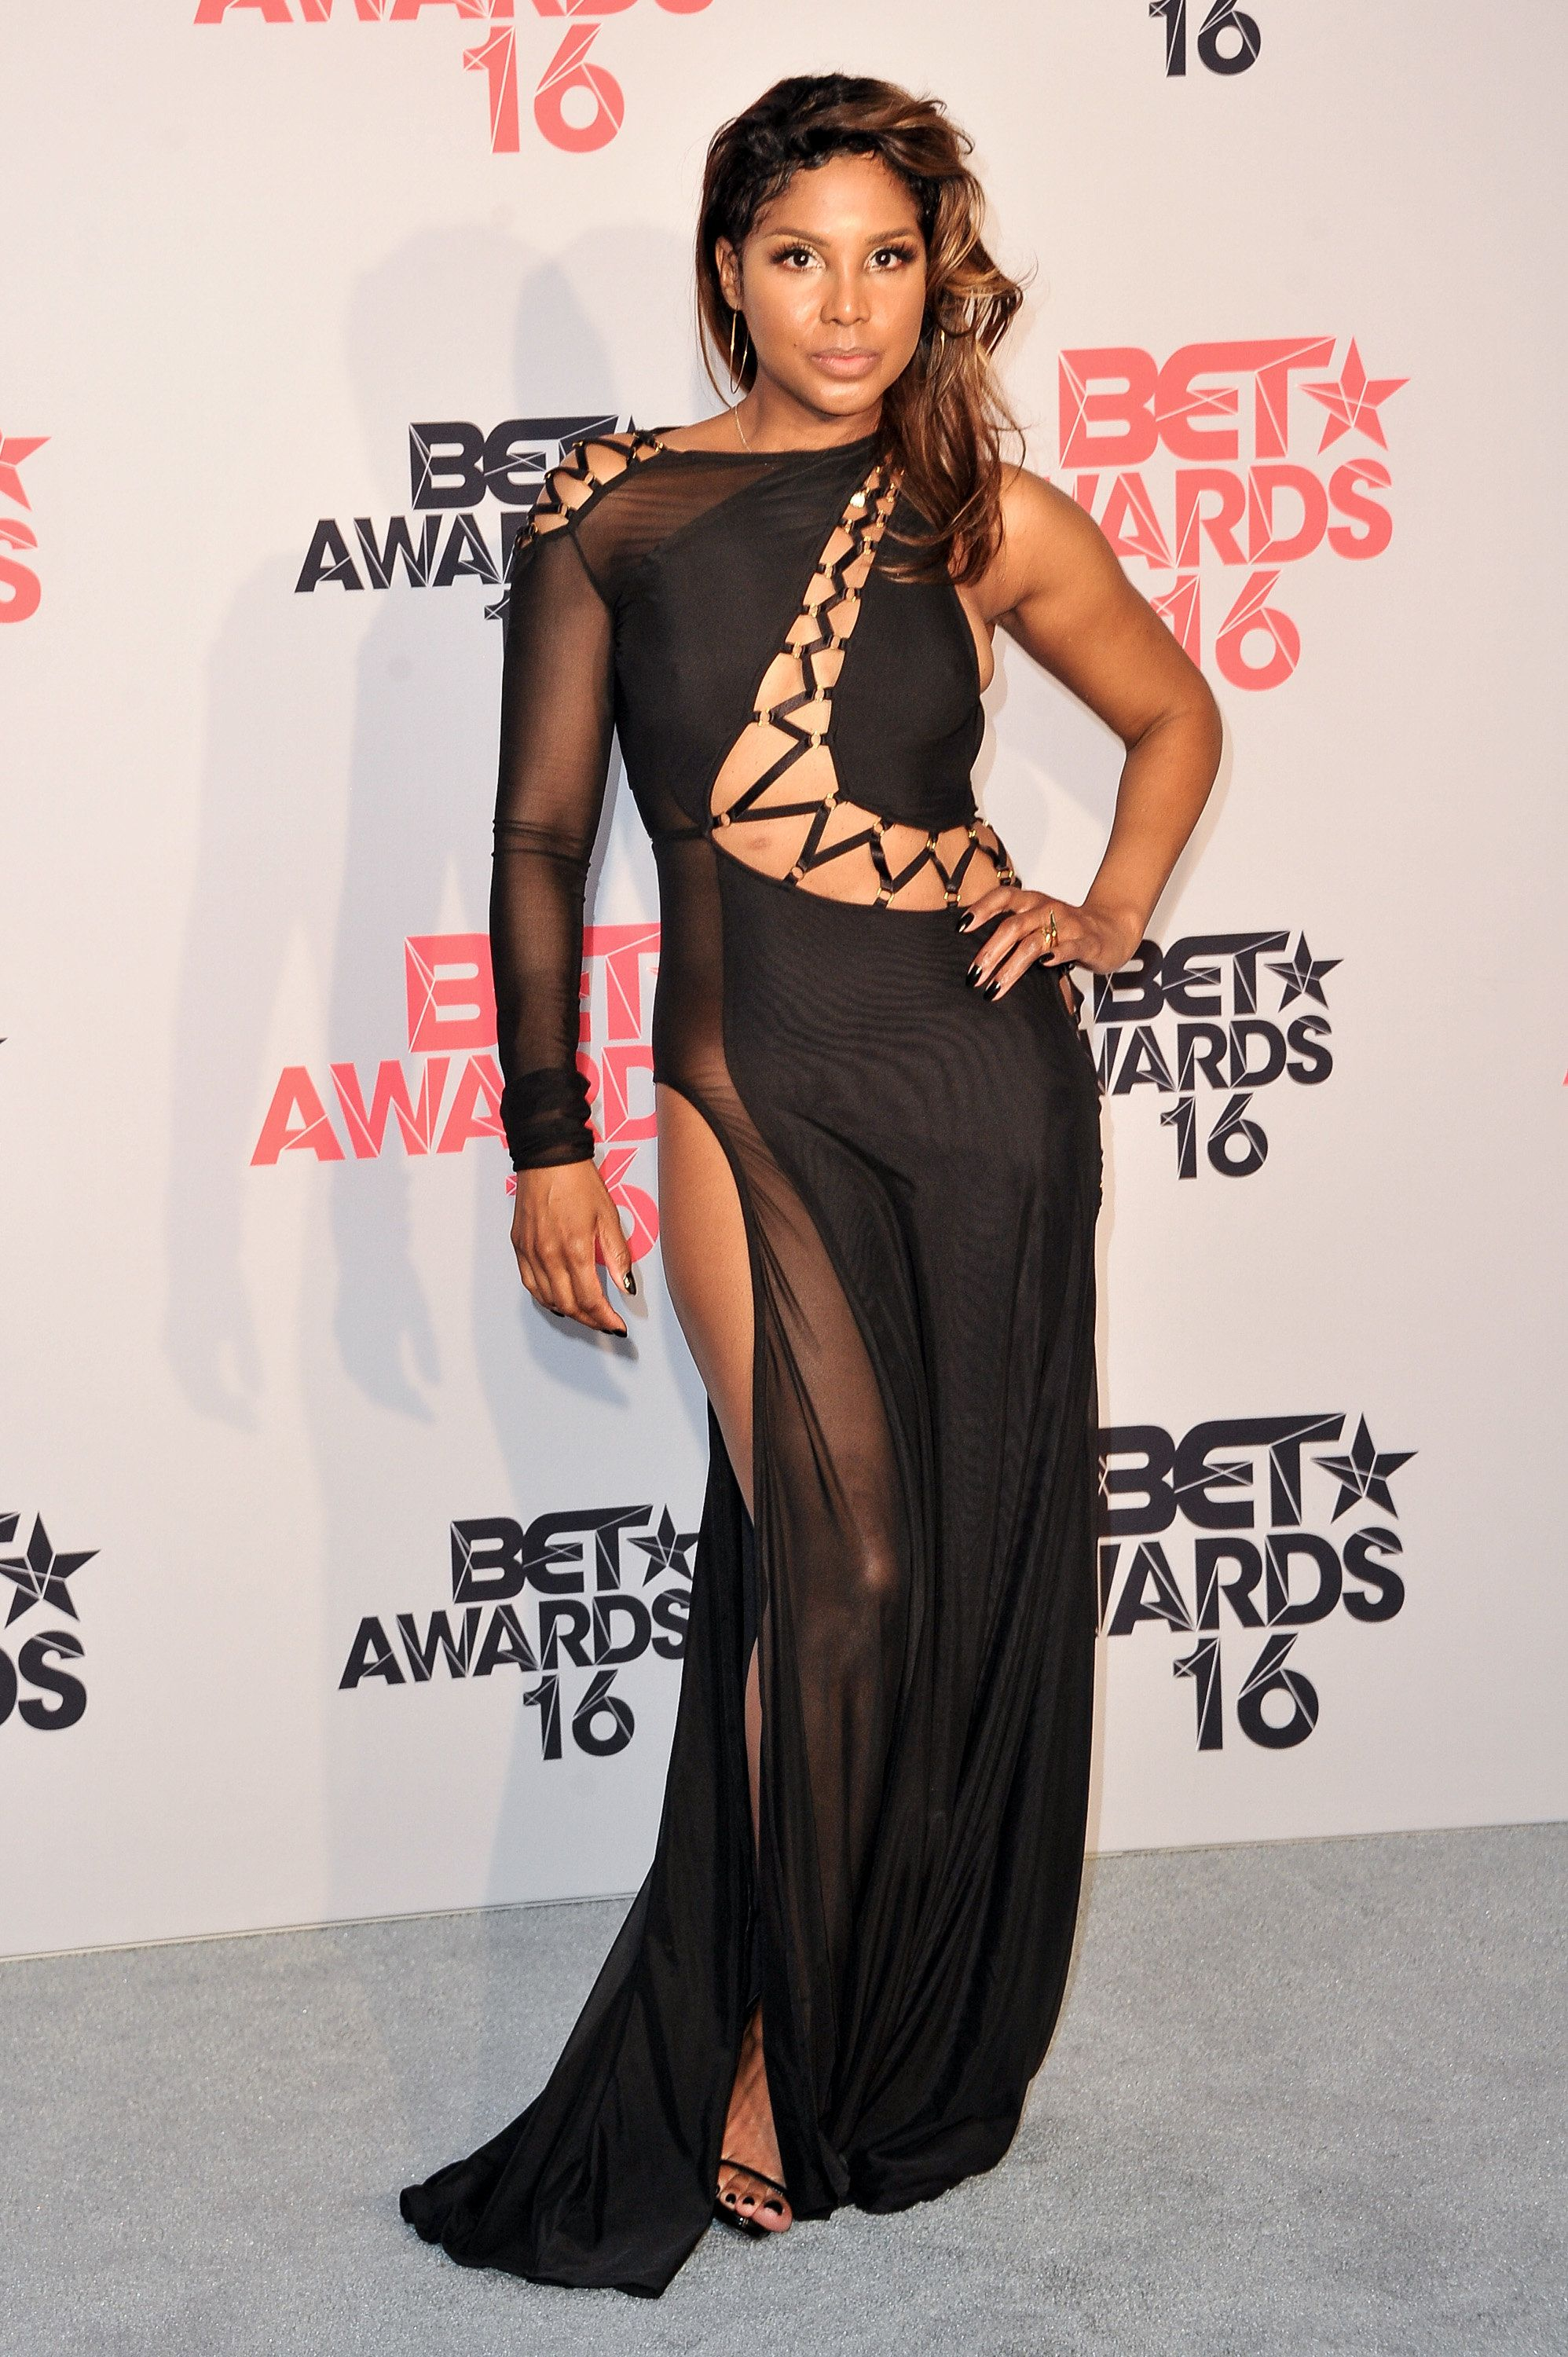 LOS ANGELES, CA - JUNE 26:  Singer Toni Braxton poses for pictures in the press room during the 2016 BET Awards at Microsoft Theater on June 26, 2016 in Los Angeles, California.  (Photo by Allen Berezovsky/WireImage)